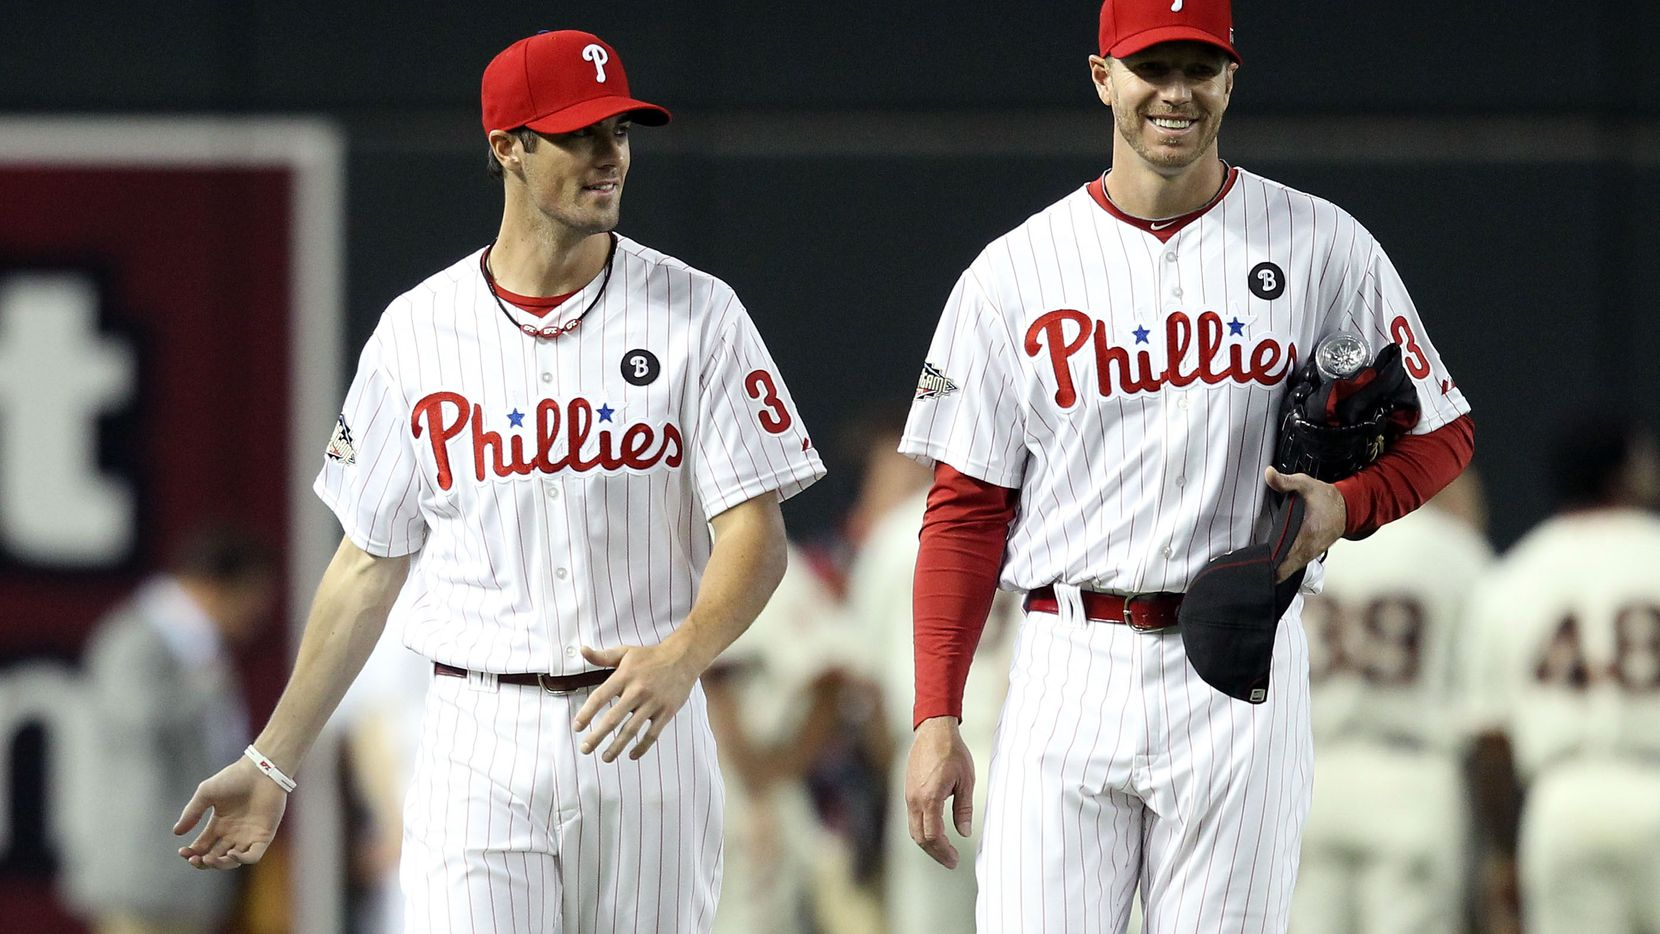 PHOENIX, AZ - JULY 12:  National League All-Star Cole Hamels #35 of the Philadelphia Phillies and National League All-Star Roy Halladay #34 of the Philadelphia Phillies talk during batting practice before the start of the 82nd MLB All-Star Game at Chase Field on July 12, 2011 in Phoenix, Arizona.  (Photo by Christian Petersen/Getty Images)